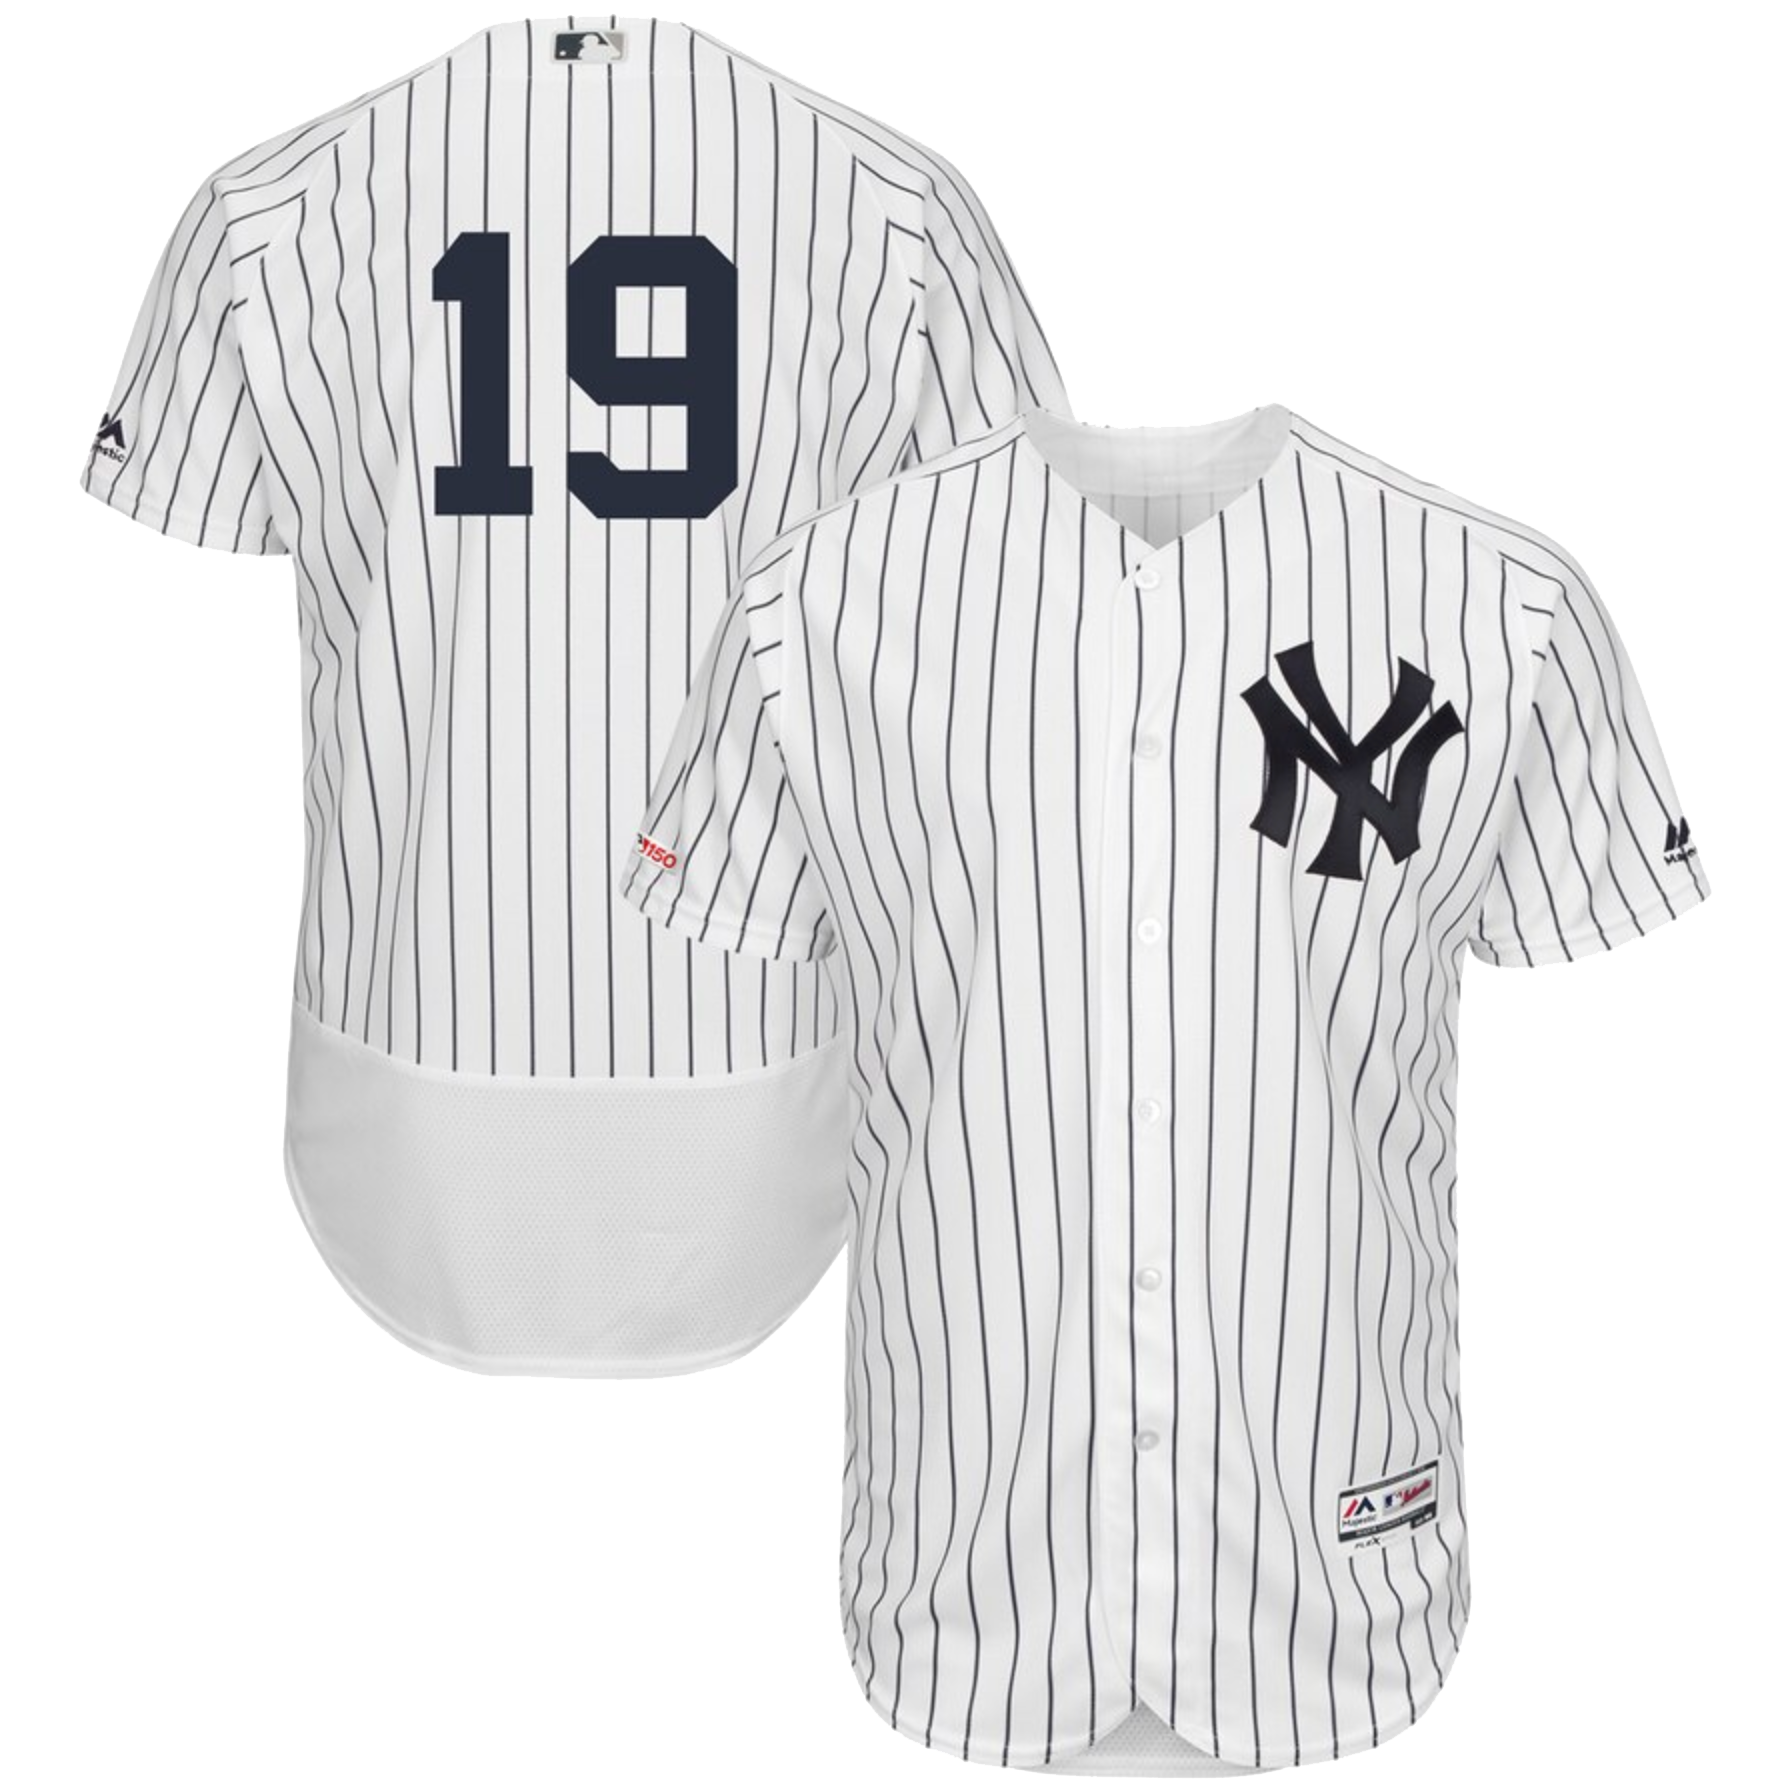 SHOW YOUR LOVE FOR THE NEW YORK YANKEES AND MASAHIRO TANAKA WITH THIS FLEX BASE AUTHENTIC COLLECTION PLAYER JERSEY FROM MAJESTIC!